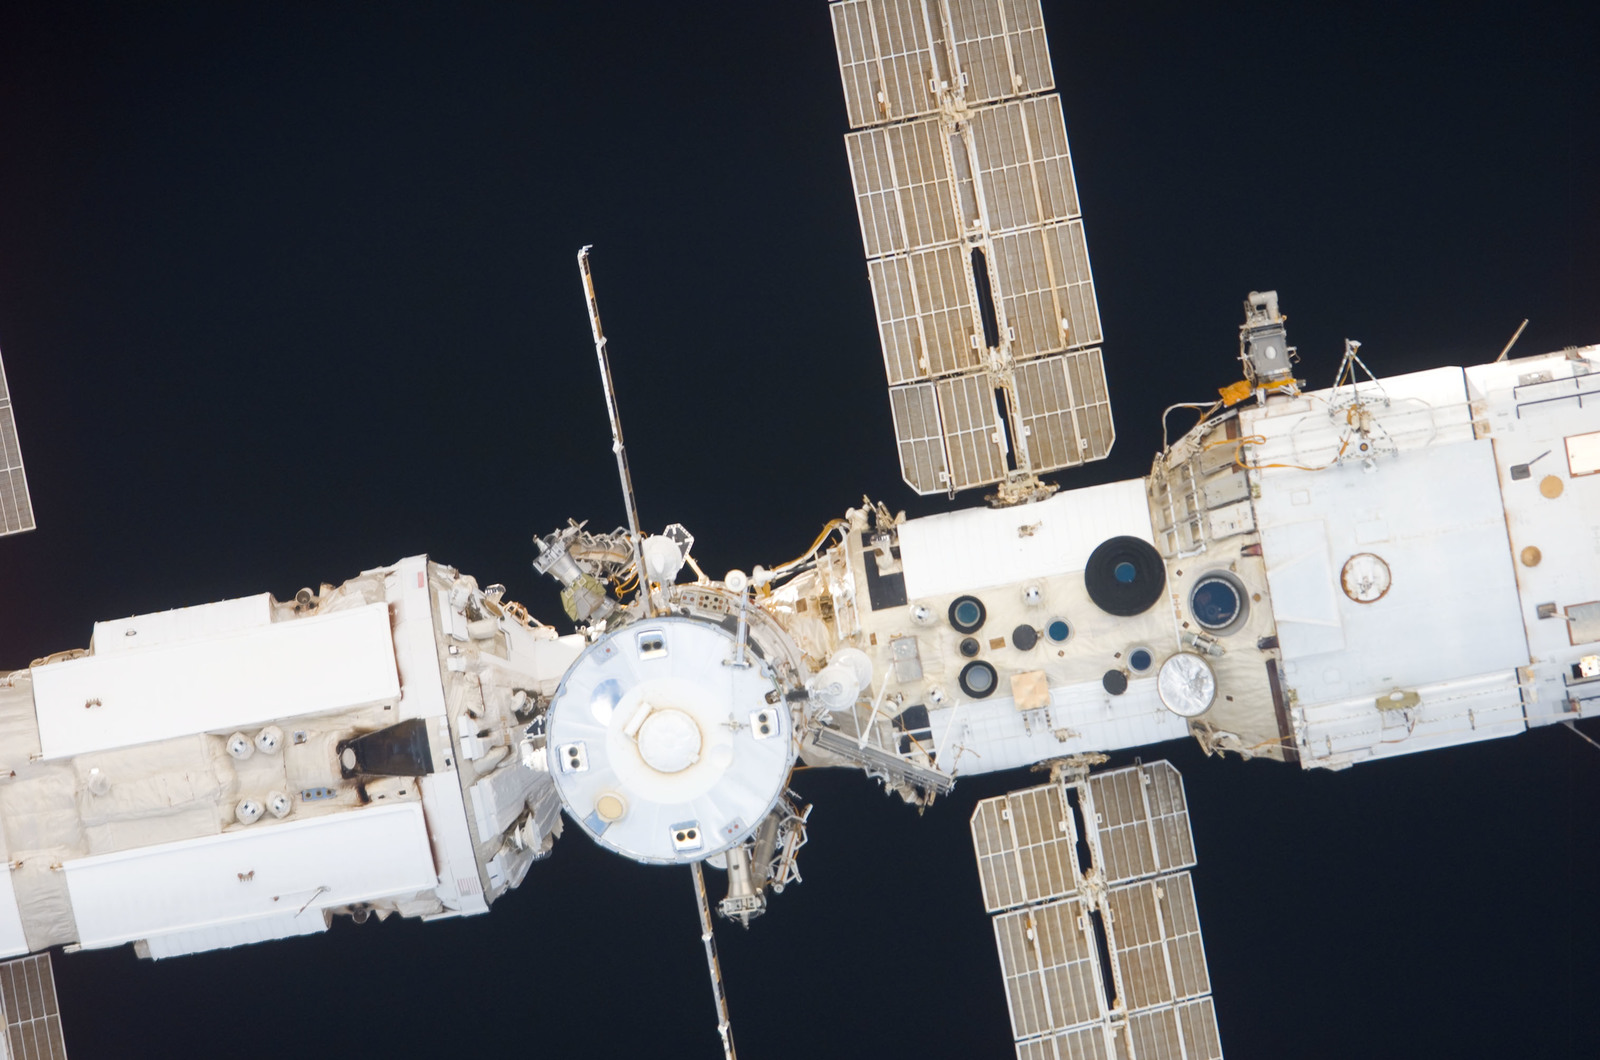 S116E05635 - STS-116 - Approach view of the FGB, Progress Resupply Vehicle, and SM